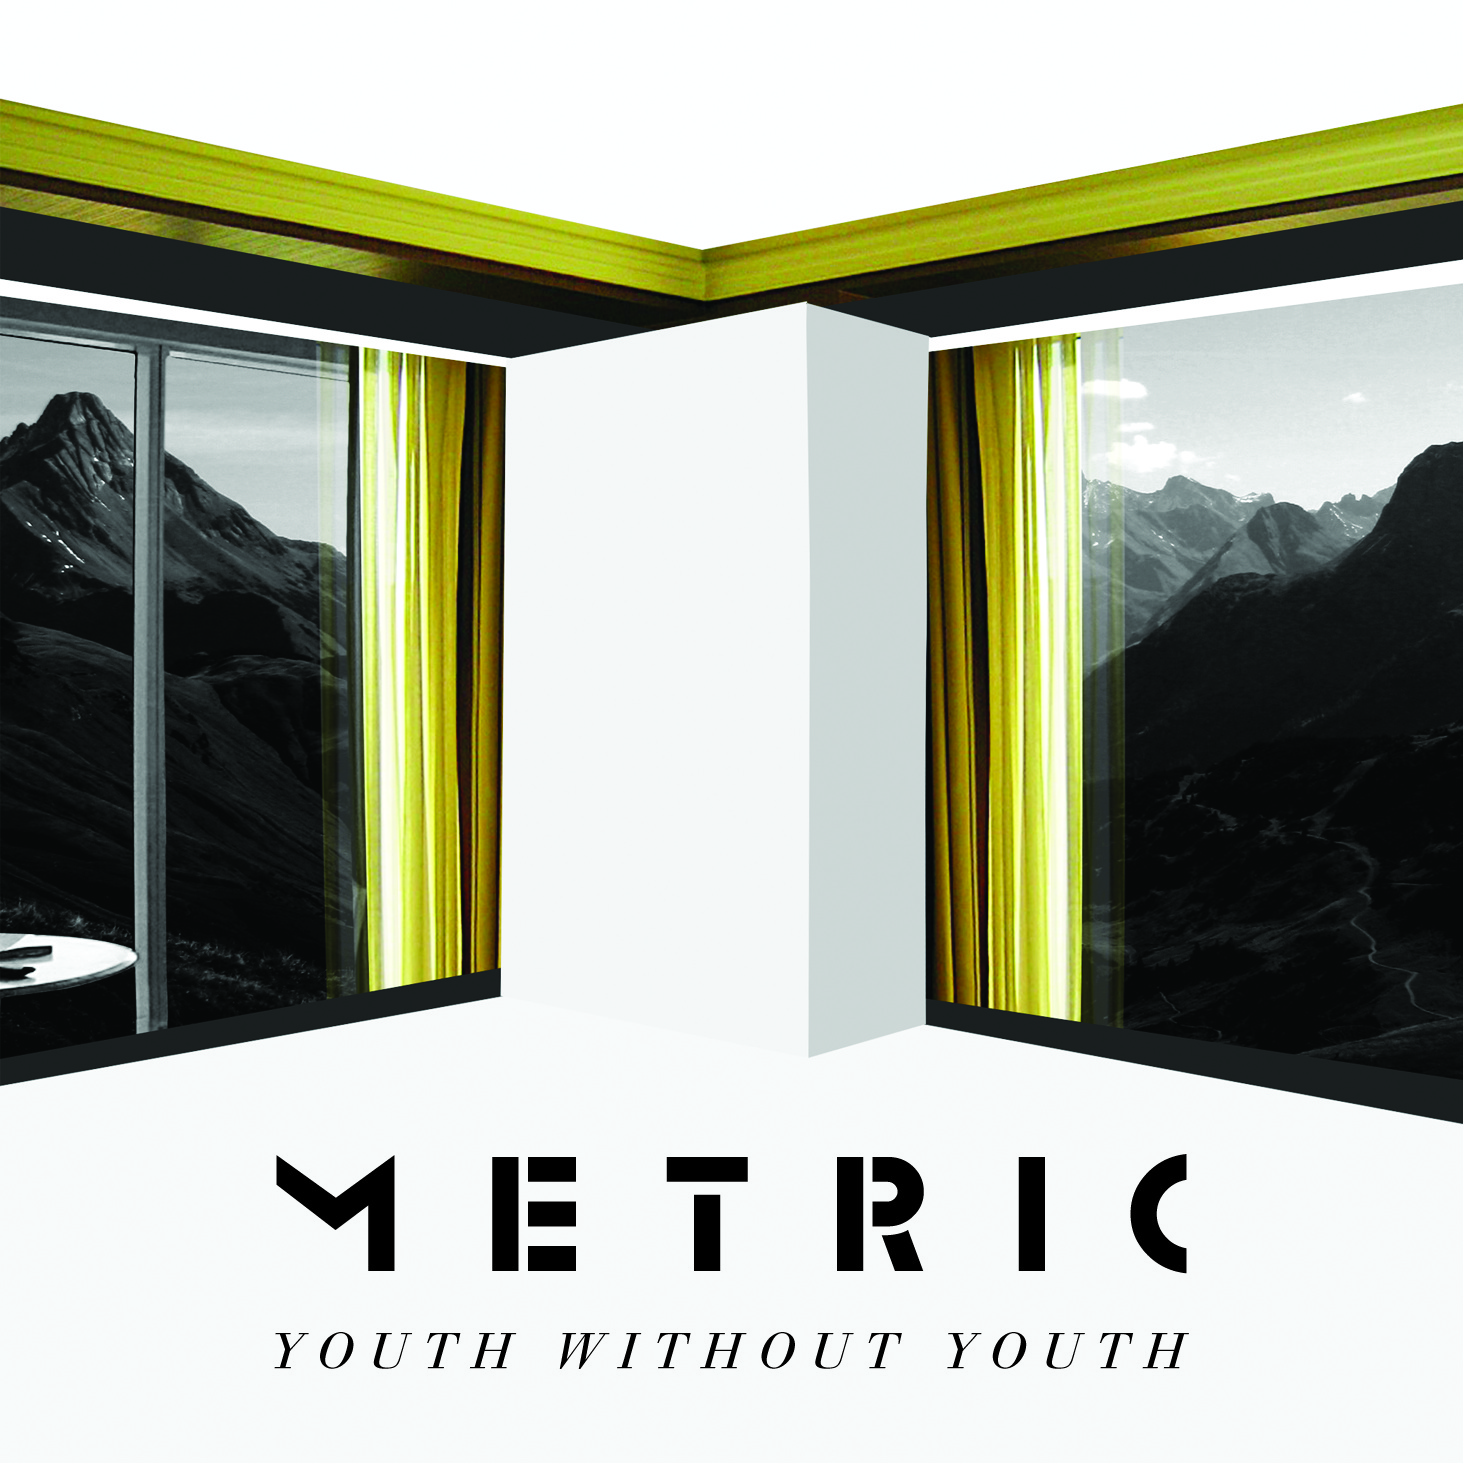 Metric-Youth-Without-Youth.jpg?__SQUARESPACE_CACHEVERSION=1335801217751